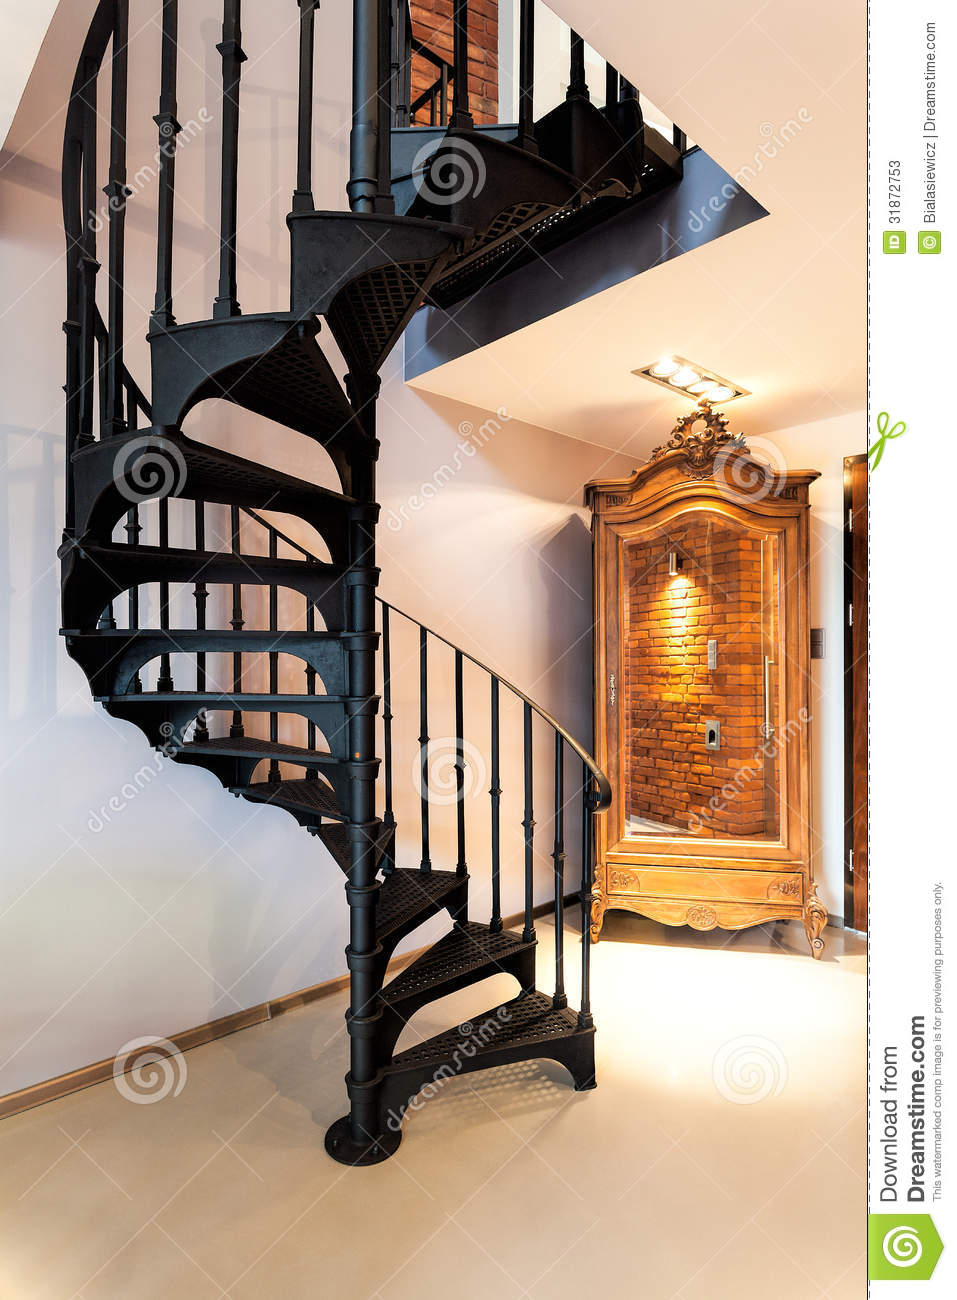 Spiral Staircase And A Wardrobe Stock Photos Image 31872753